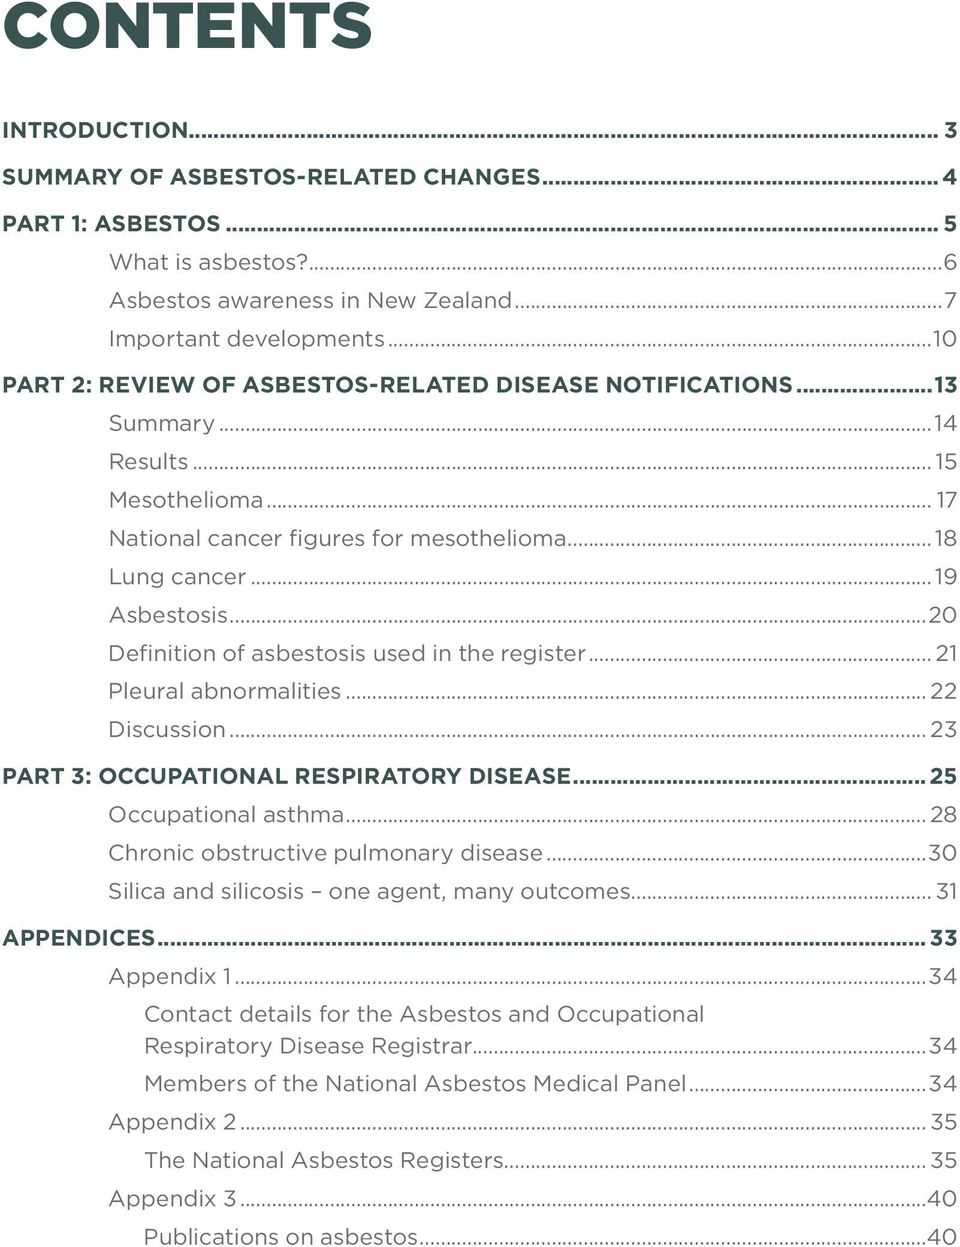 ..20 Definition of asbestosis used in the register... 21 Pleural abnormalities... 22 Discussion... 23 PART 3: OCCUPATIONAL RESPIRATORY DISEASE... 25 Occupational asthma.